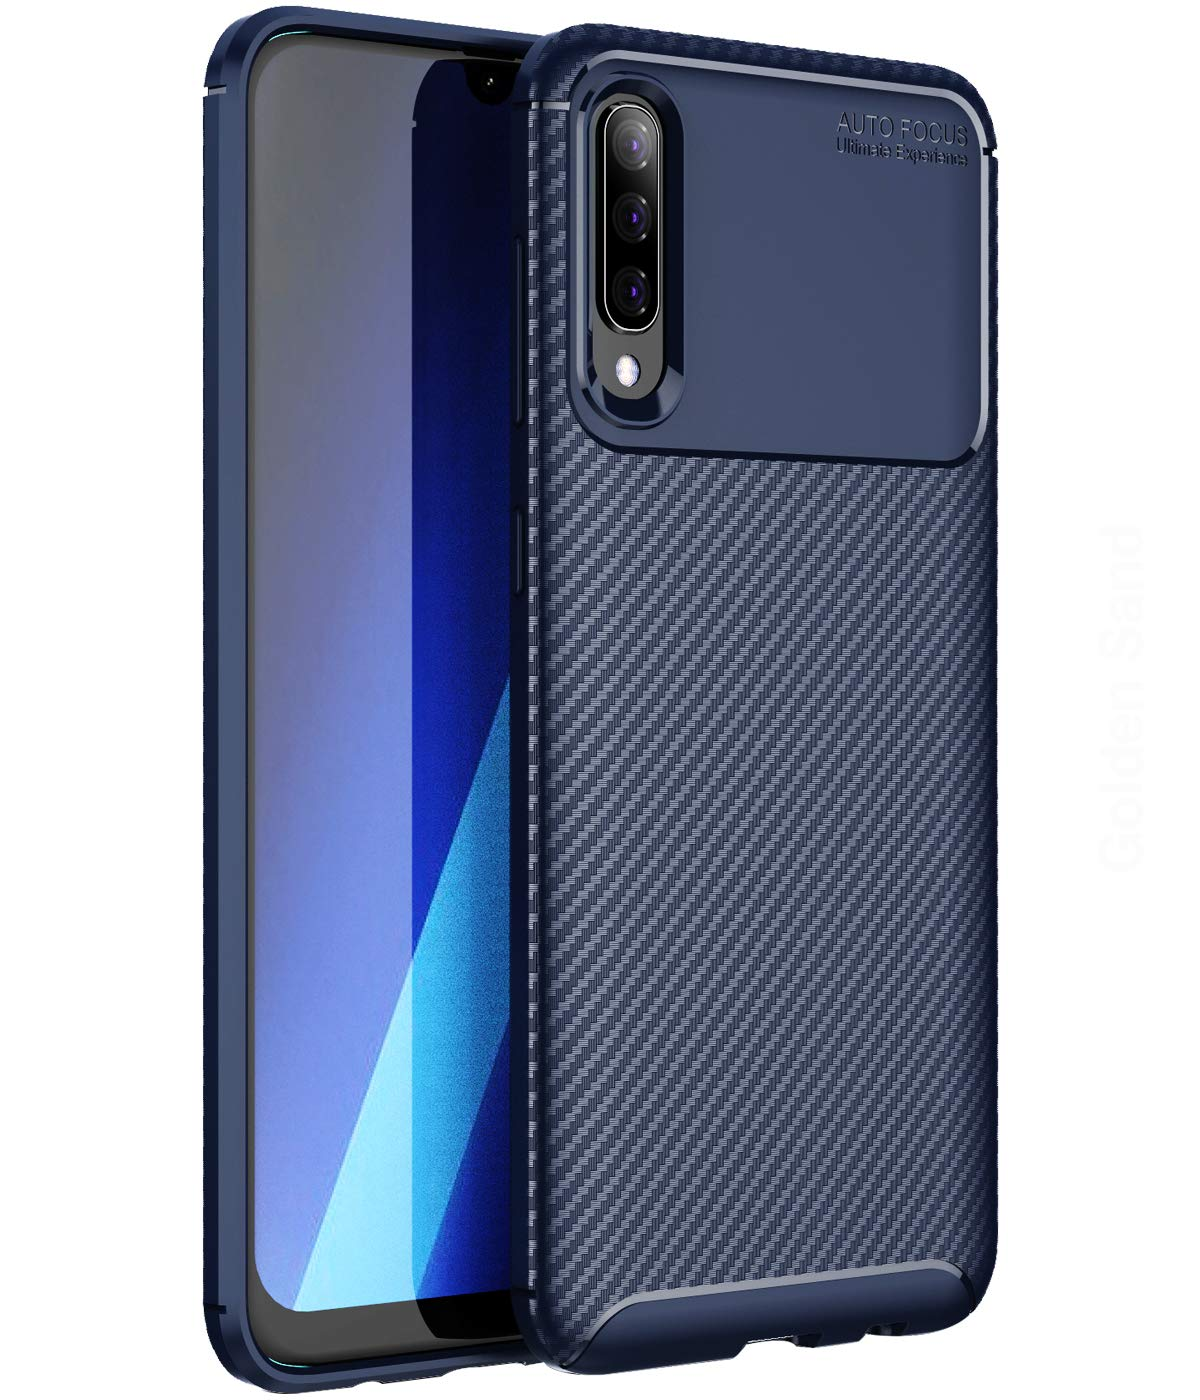 metà fuori 41f0b 37cb1 Golden Sand for Samsung Galaxy A50 Back Cover Slim Drop Tested Aramid  Carbon Fibre Shockproof Armor TPU Case for Samsung A50 Mobile Phone Cover,  Blue